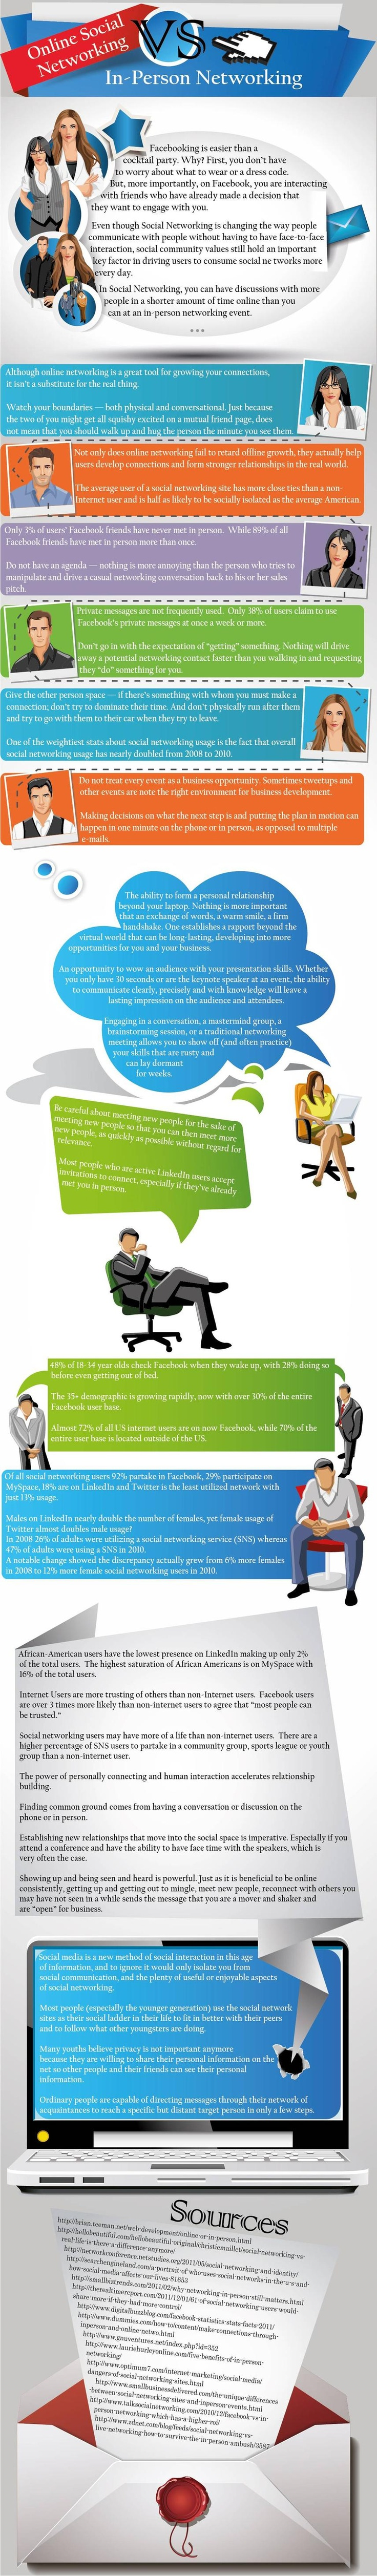 Online Social Networking vs In-Person Networking    A lot of text for an infographic and largely a rehash of stats already seen.    Posted: 2 April 2012 - res. 856 x 5,849: Infographic Pinterest, Network Etiquette, Social, Media Marketing, Network Infographic, Media Infographic, In Personalized Network, April 2012, Marketing Infographic